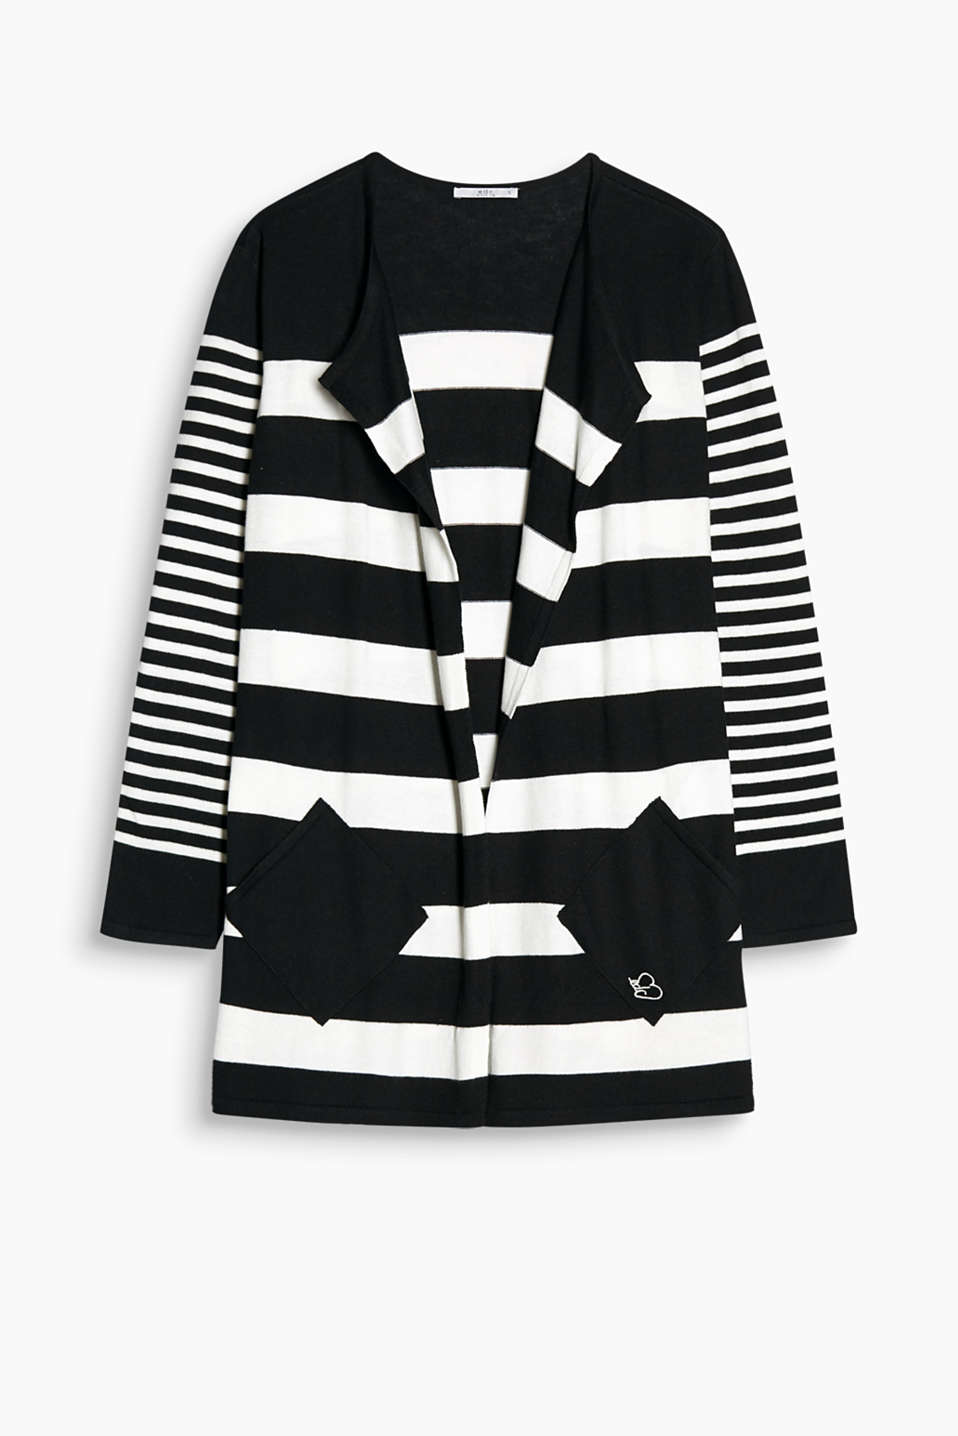 Long open cardigan in a striped look with patch pockets at hip height and elongated sleeves with slits